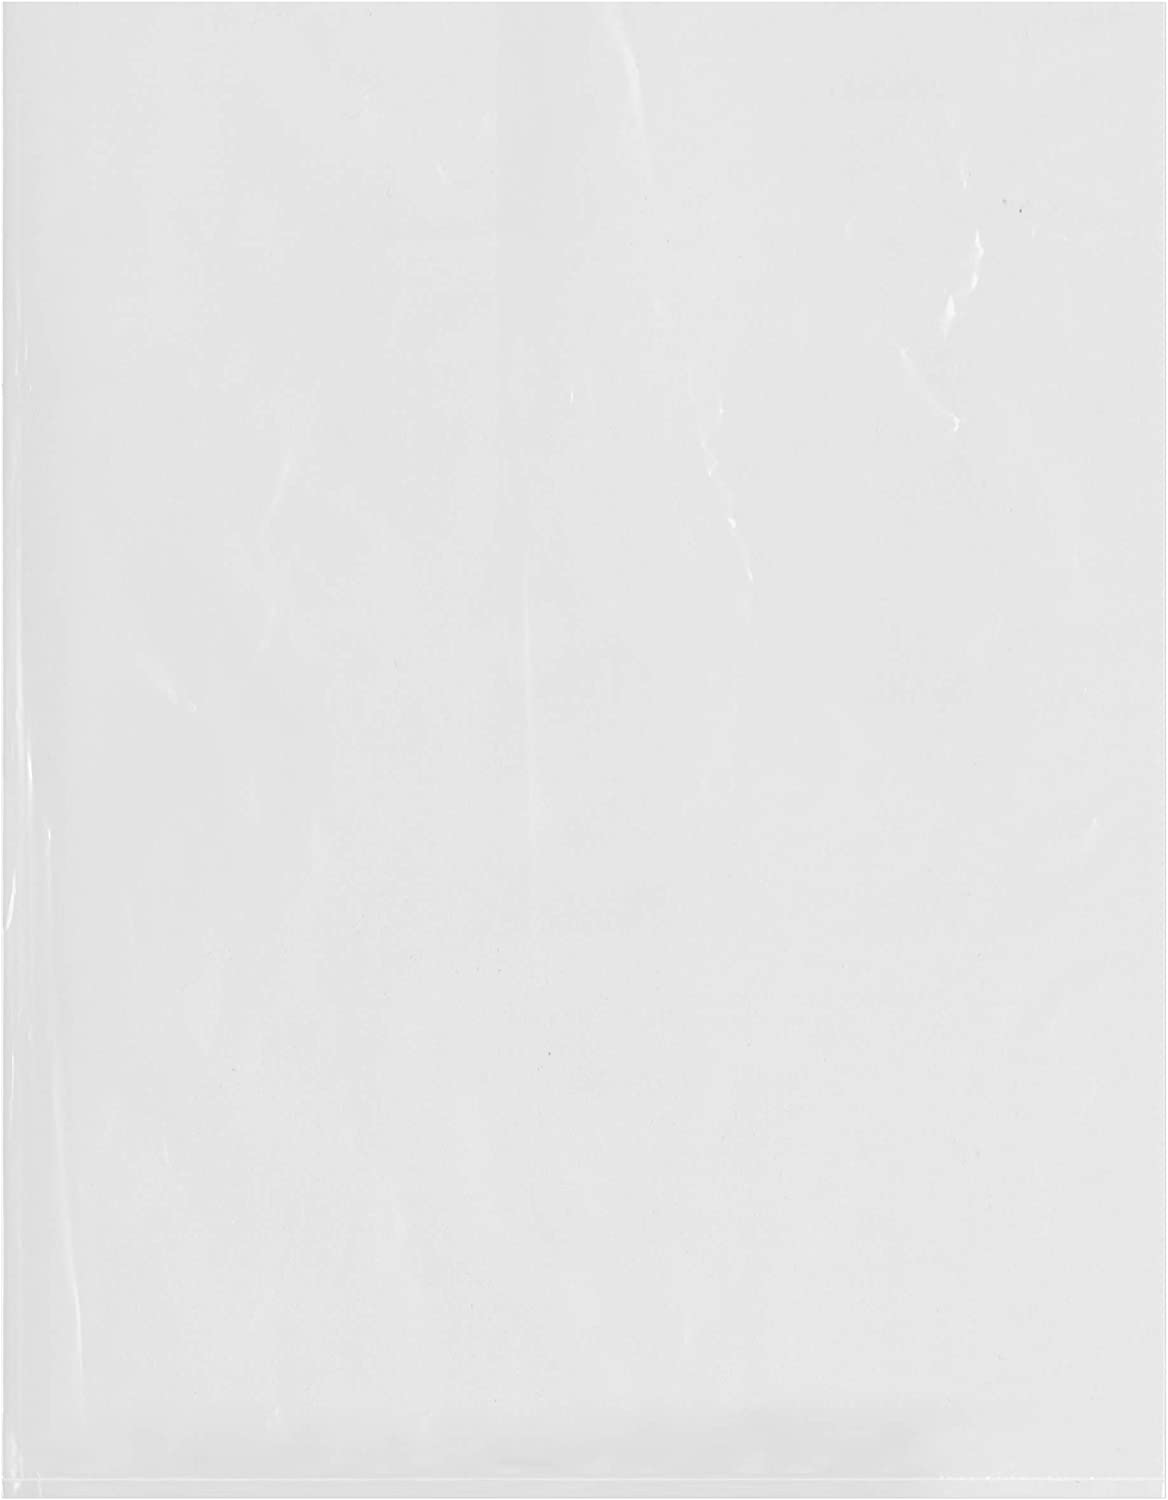 Plymor Flat Open Clear Plastic Poly Bags, 2 Mil, 14